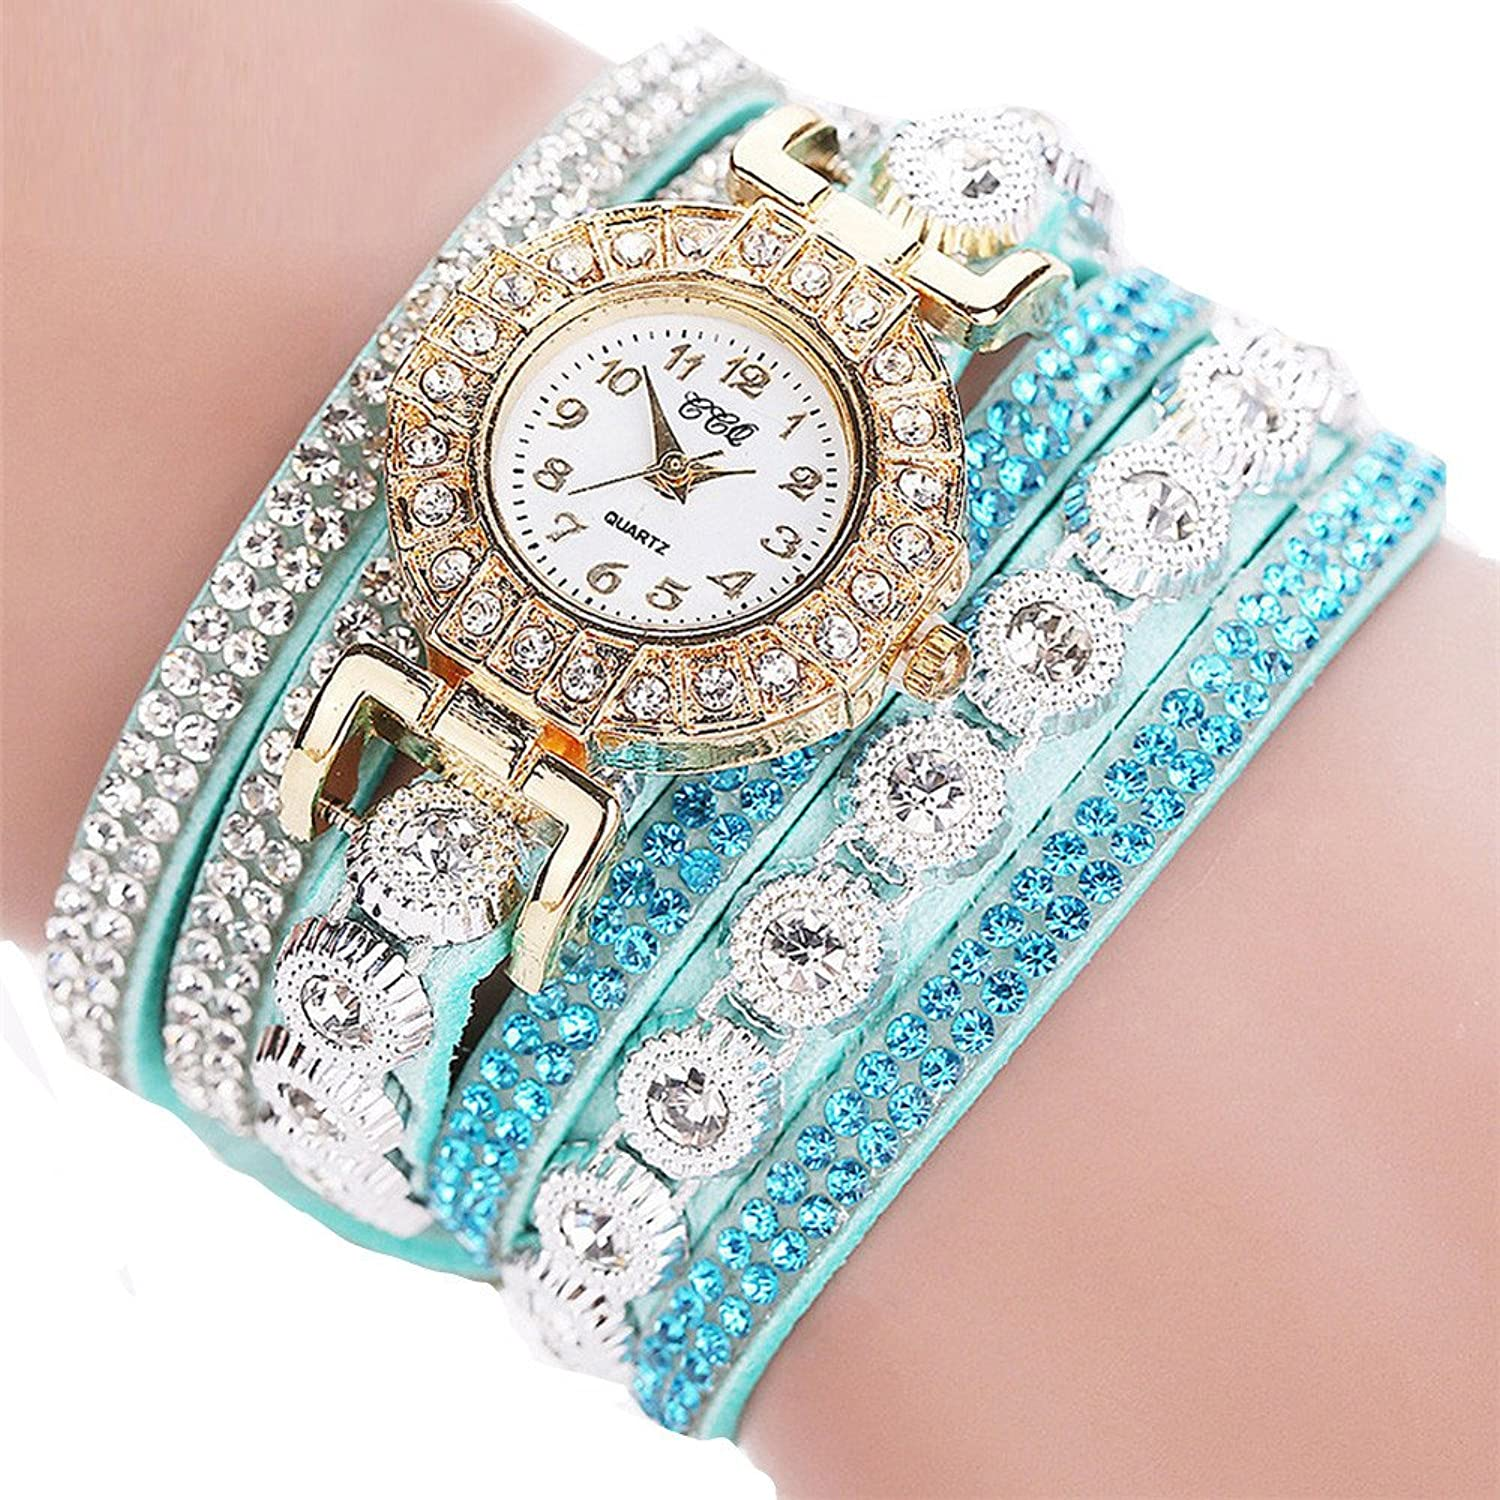 Rhinestone Bracelet Watch,COOKI Analog Fashion Clearance Lady Watches Female watches on Sale Casual Wrist Watches for Women,Round Dial Case Comfortable PU Leather Watch-H14